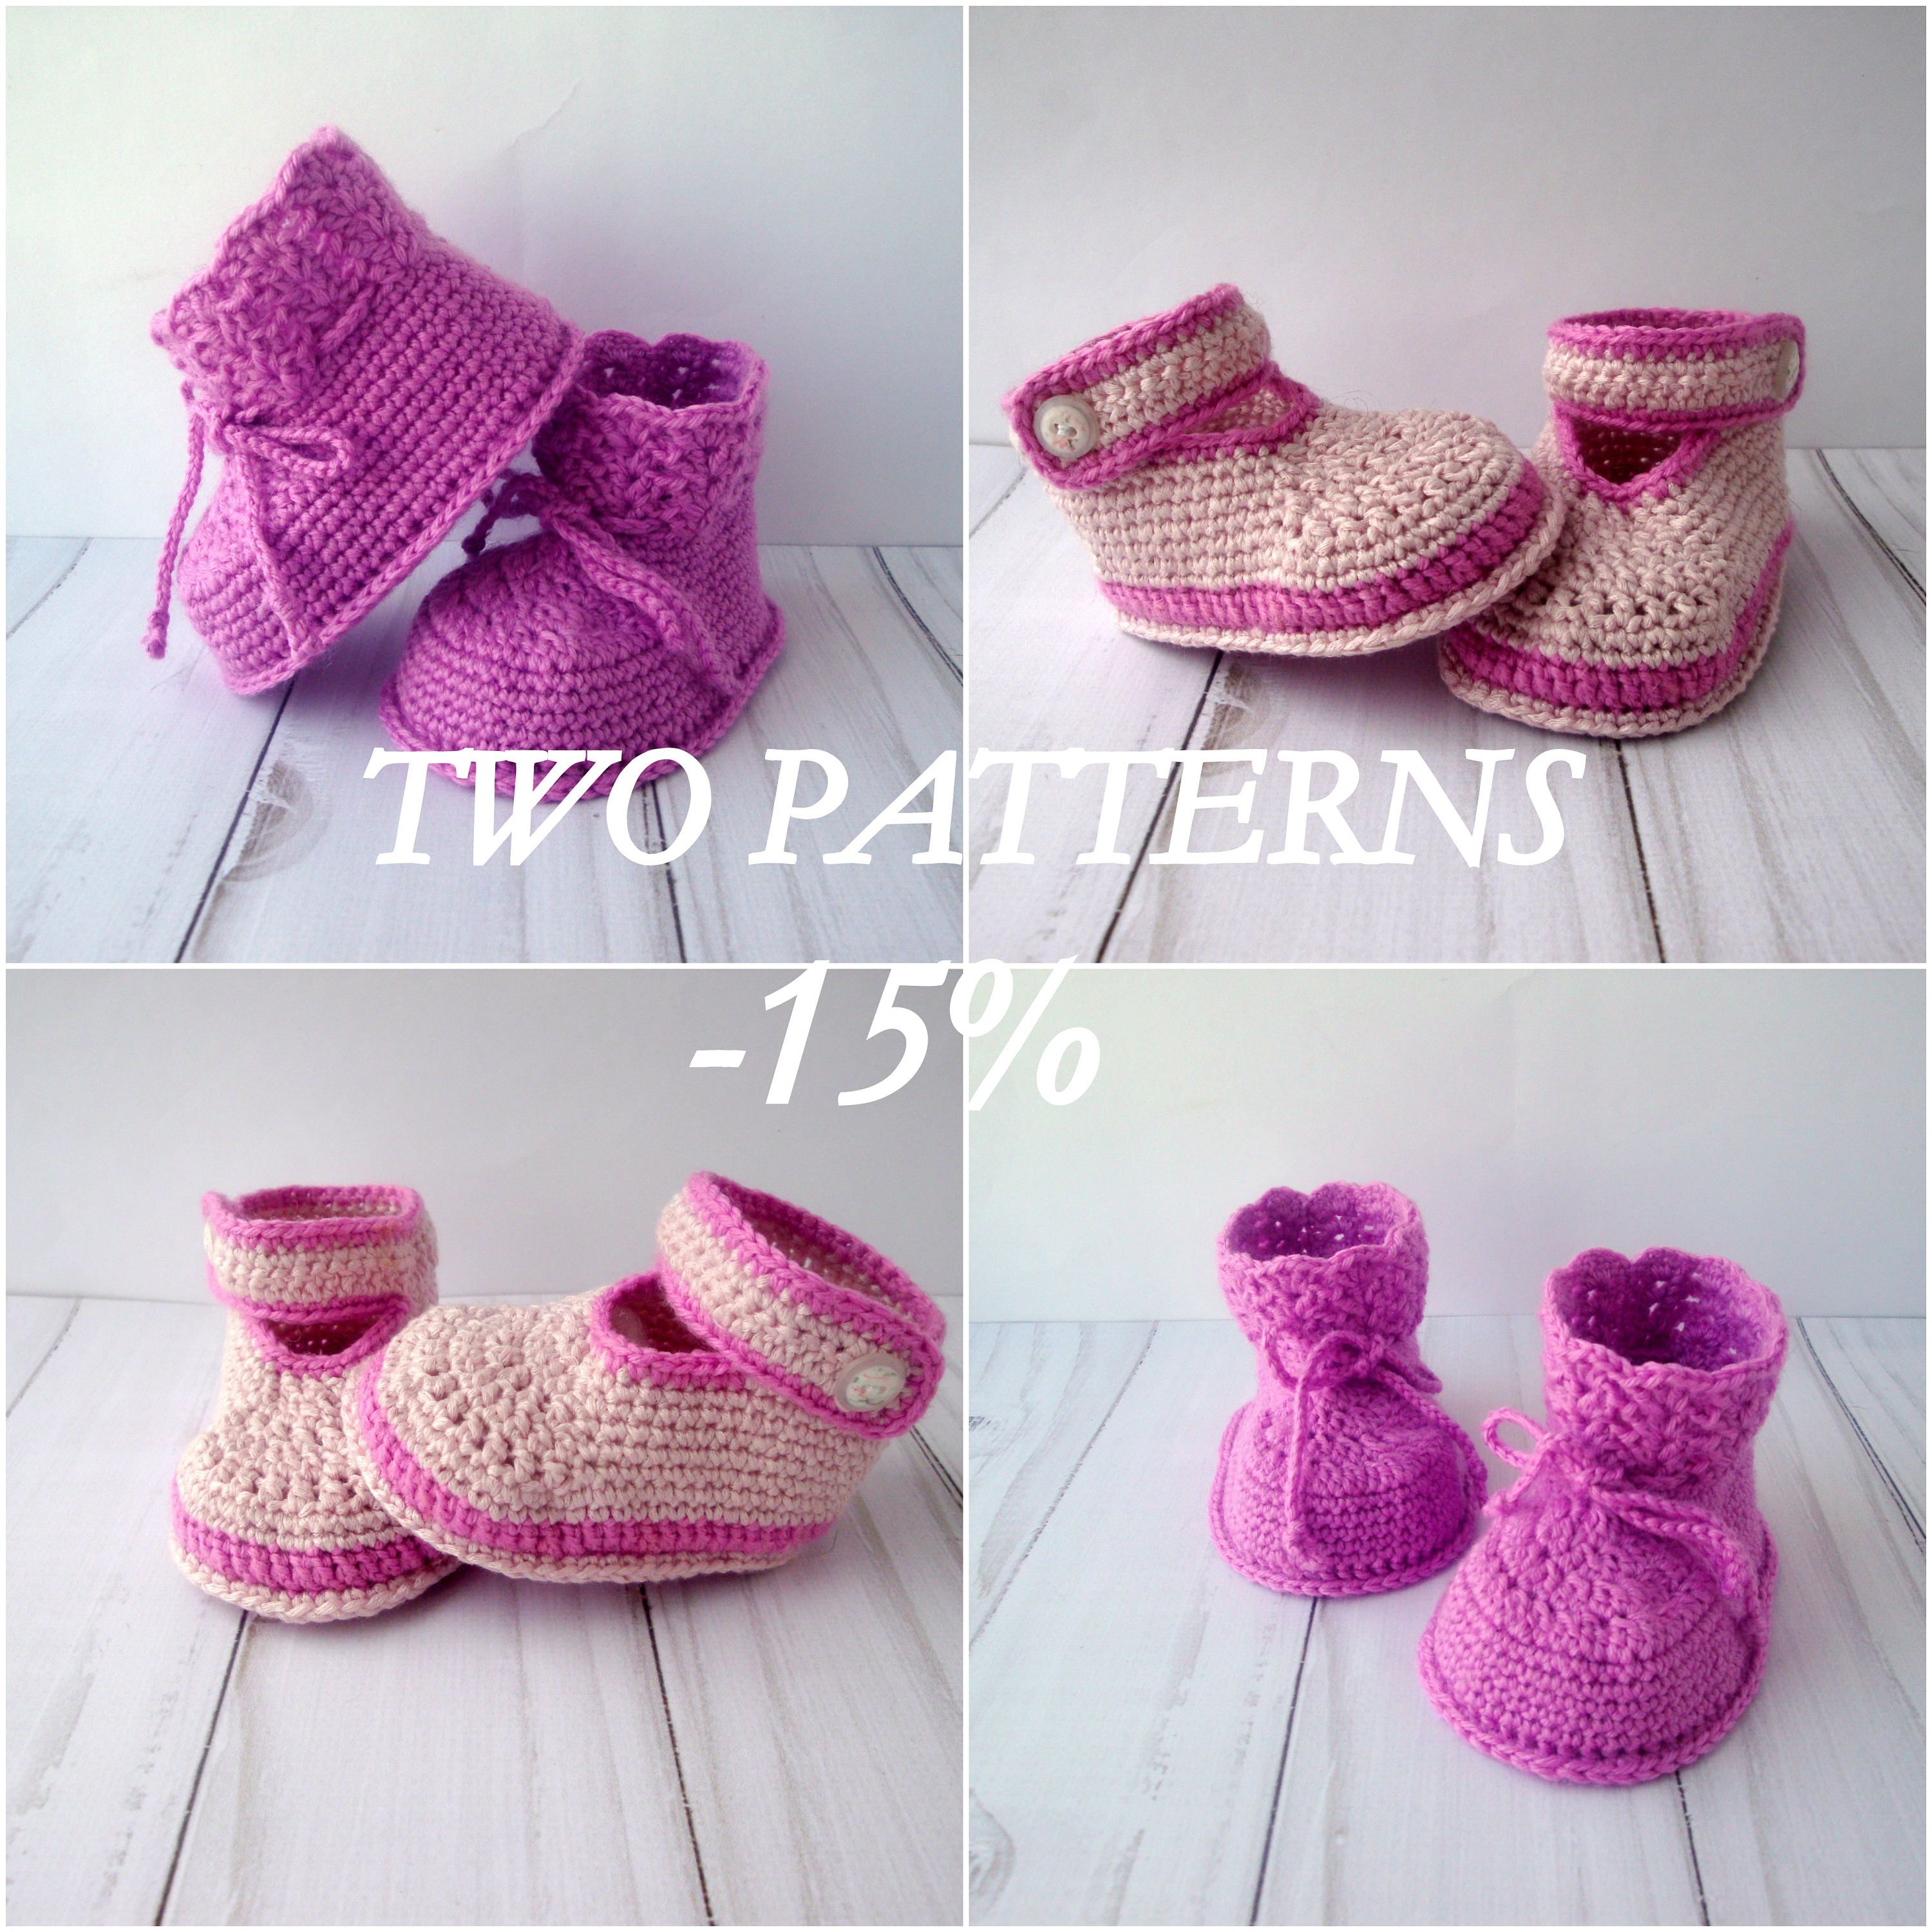 Crochet patterns sale crochet baby booties pattern crochet pattern crochet patterns sale crochet baby booties pattern crochet pattern baby sandals crochet baby shoes bankloansurffo Image collections